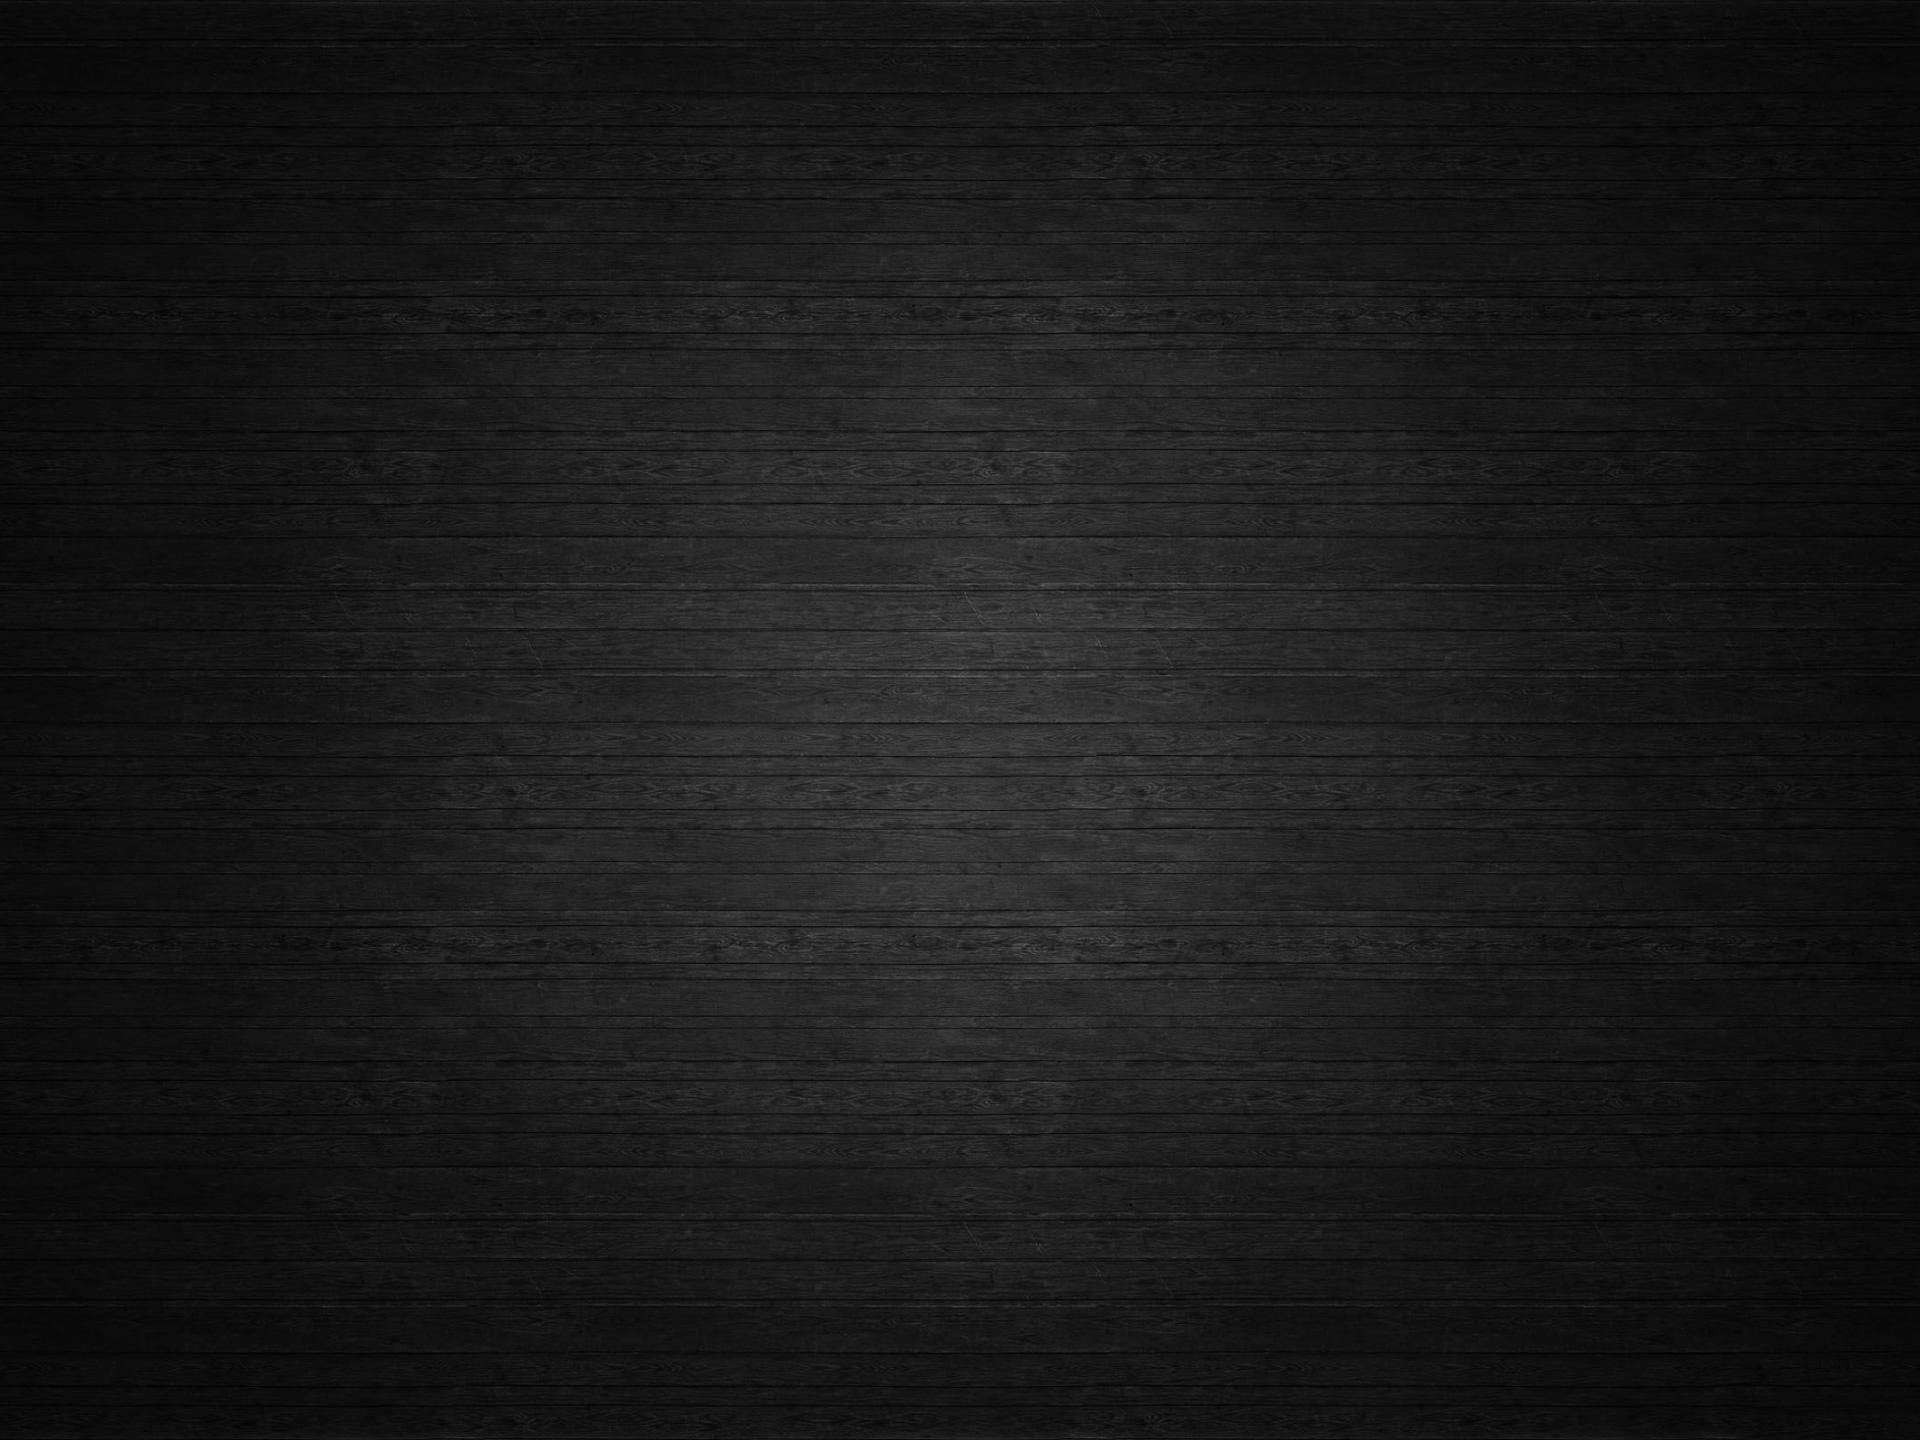 High Quality Image of Black Abstract : px